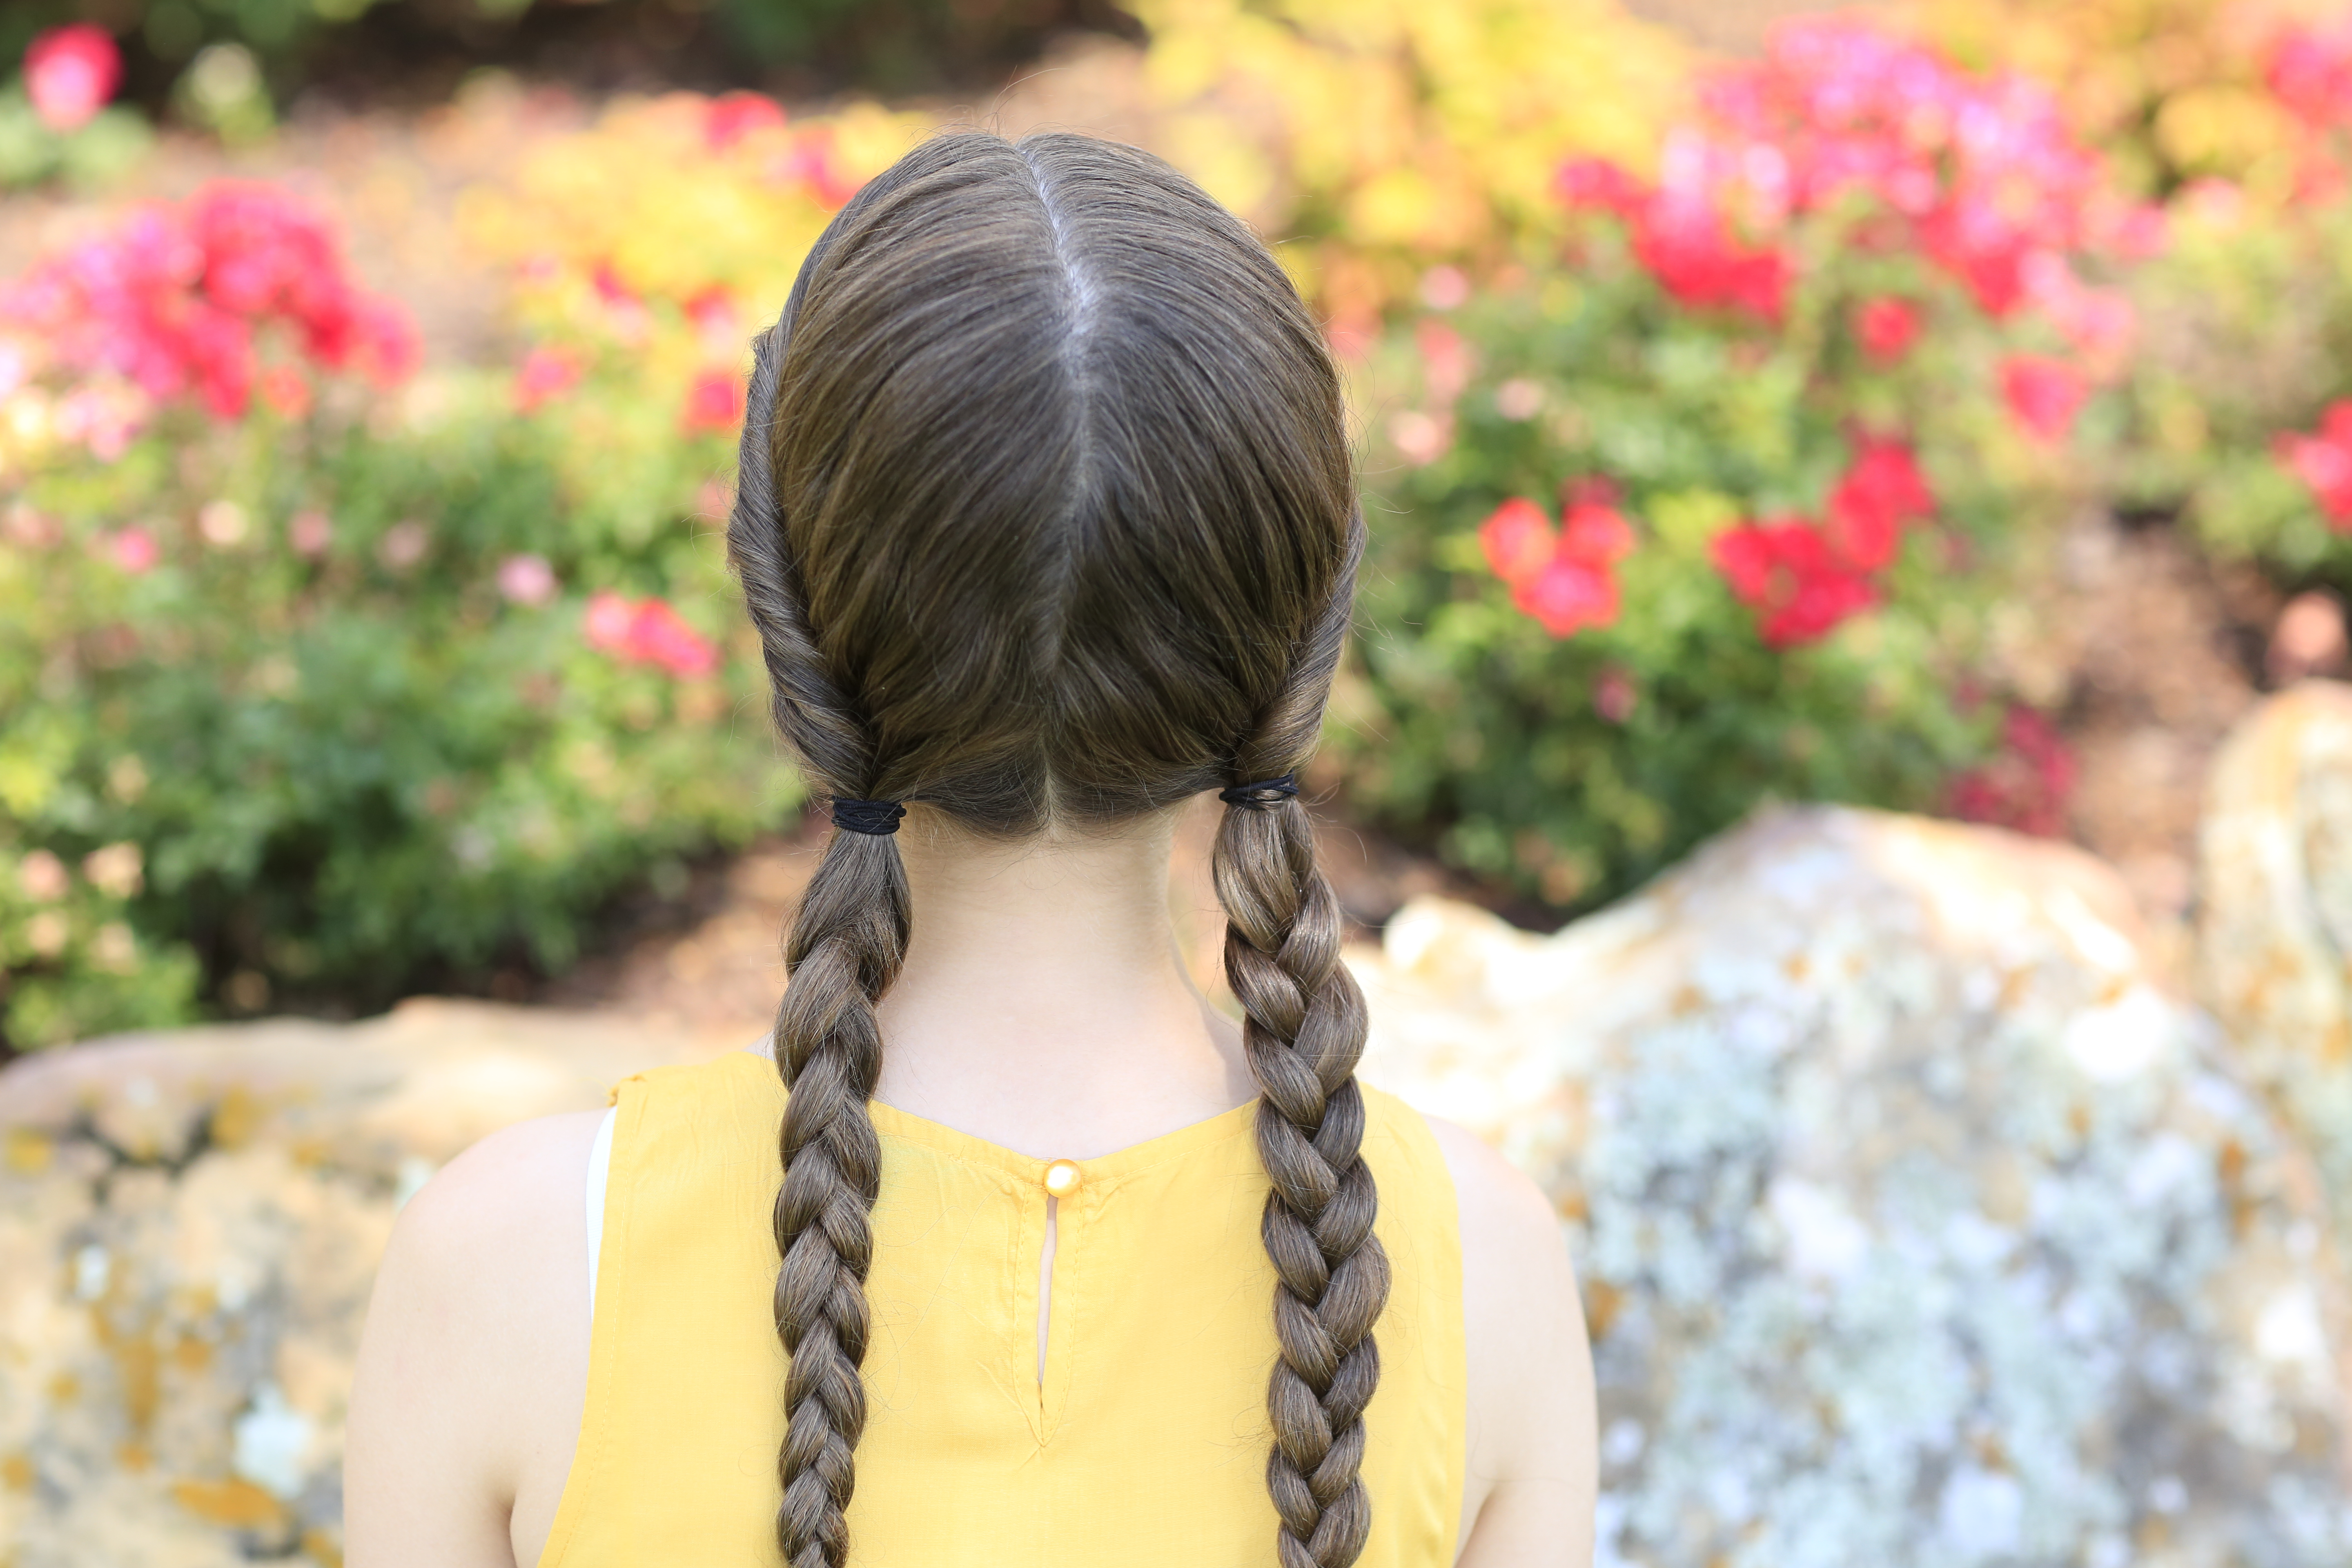 Hairstyles for Girls: Twist Back into Braids